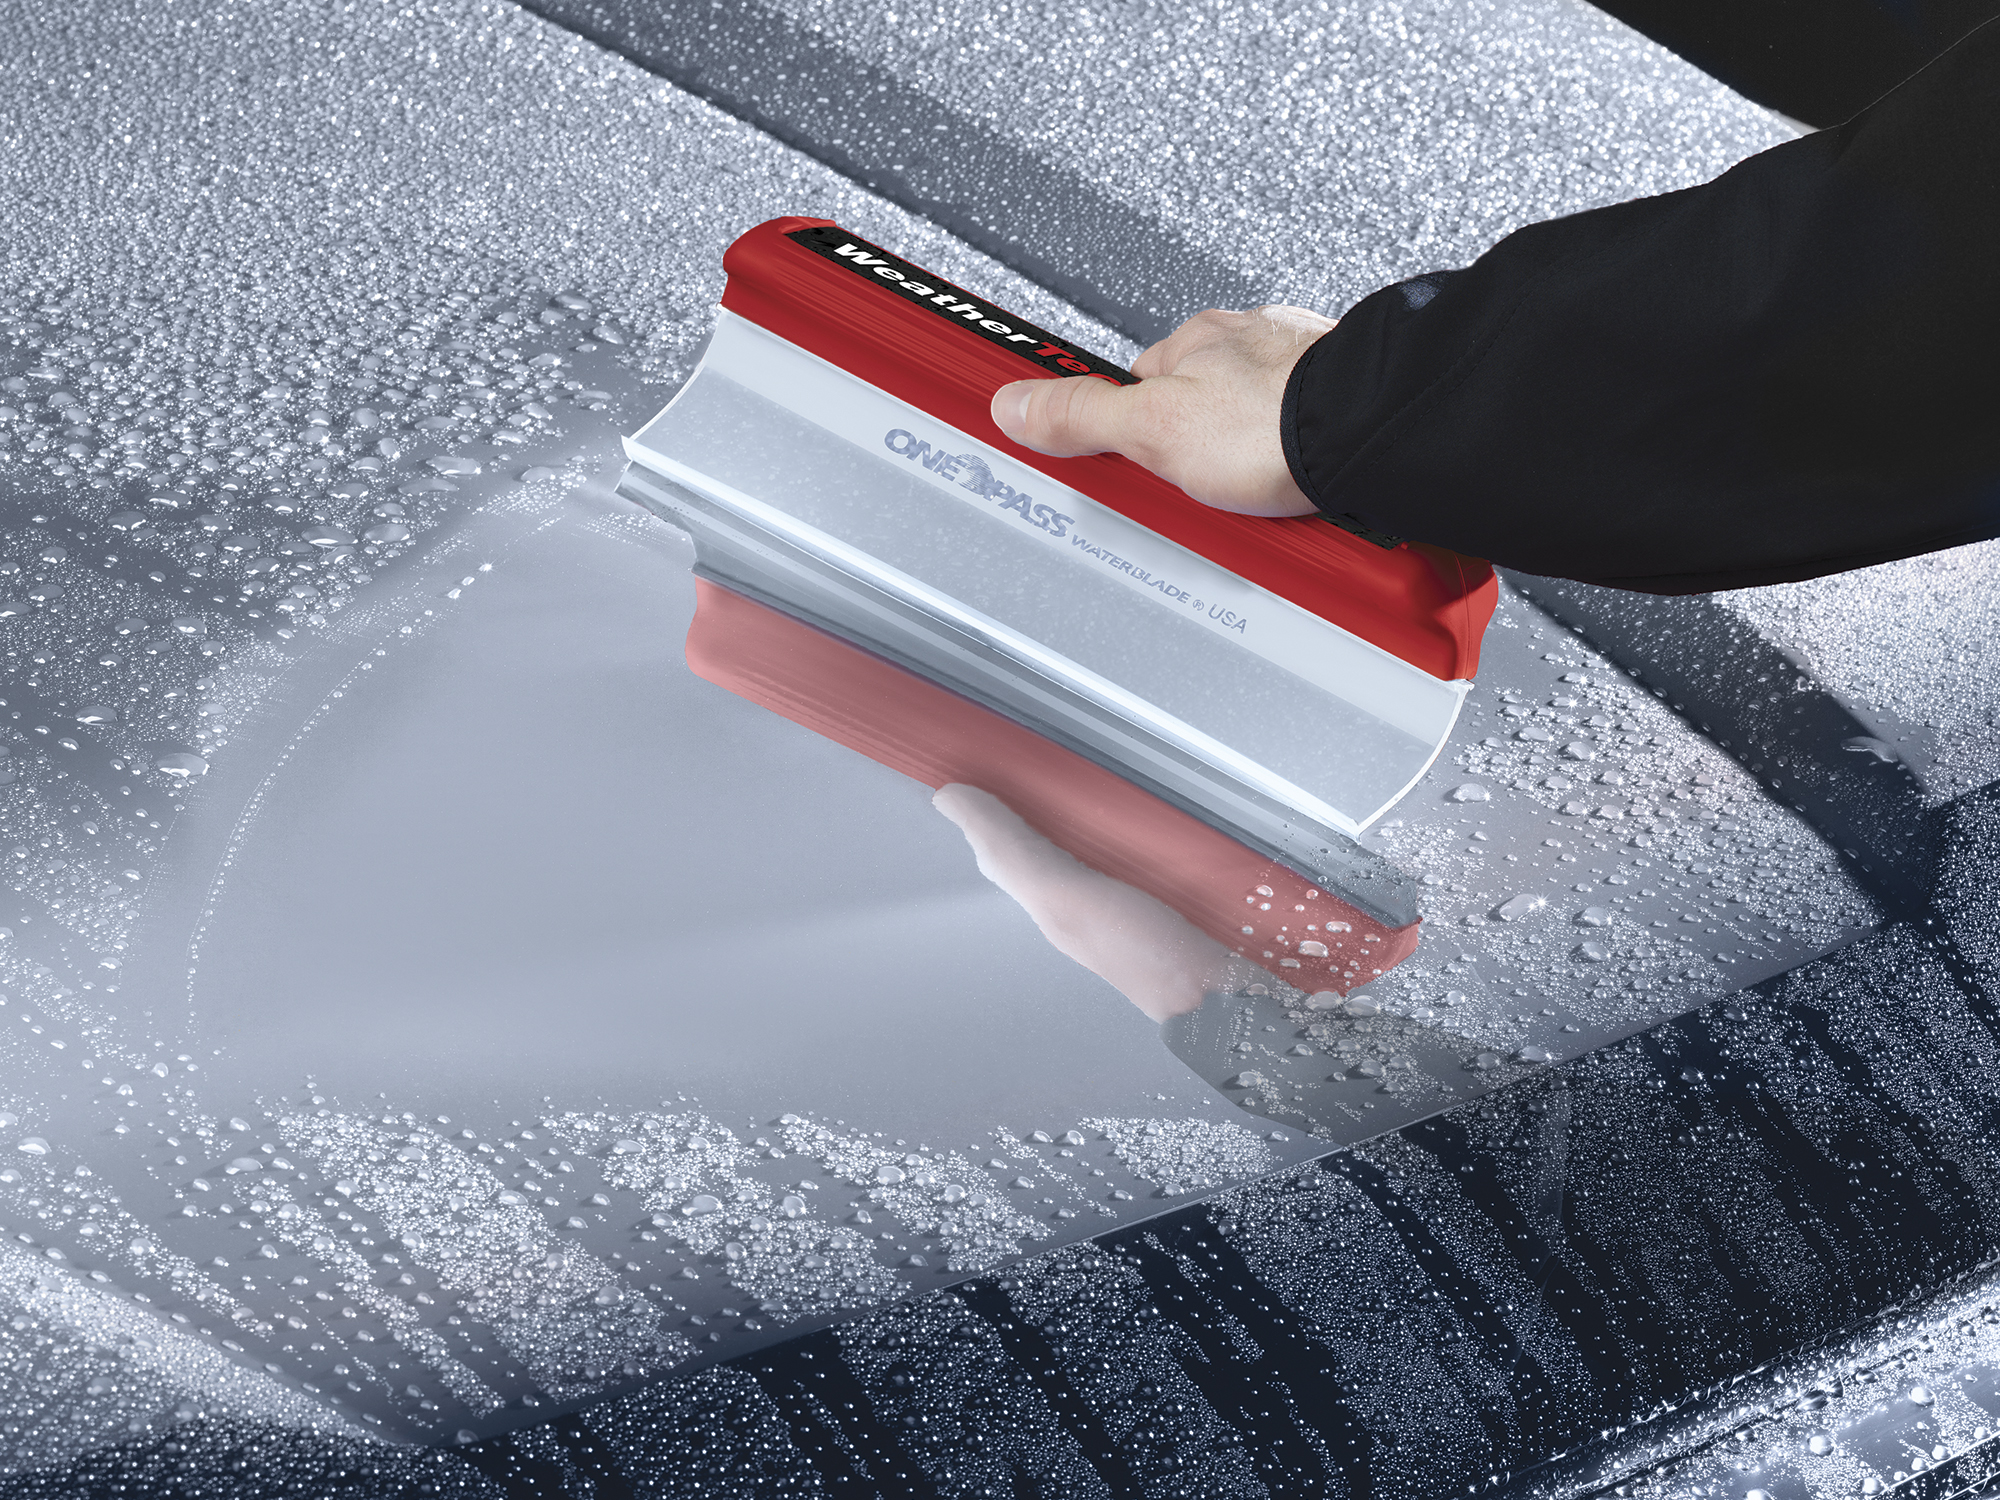 Weathertech mats cleaner - Squeegee Silicone Waterblade Squeegee For Quickly Drying Almost Any Surface